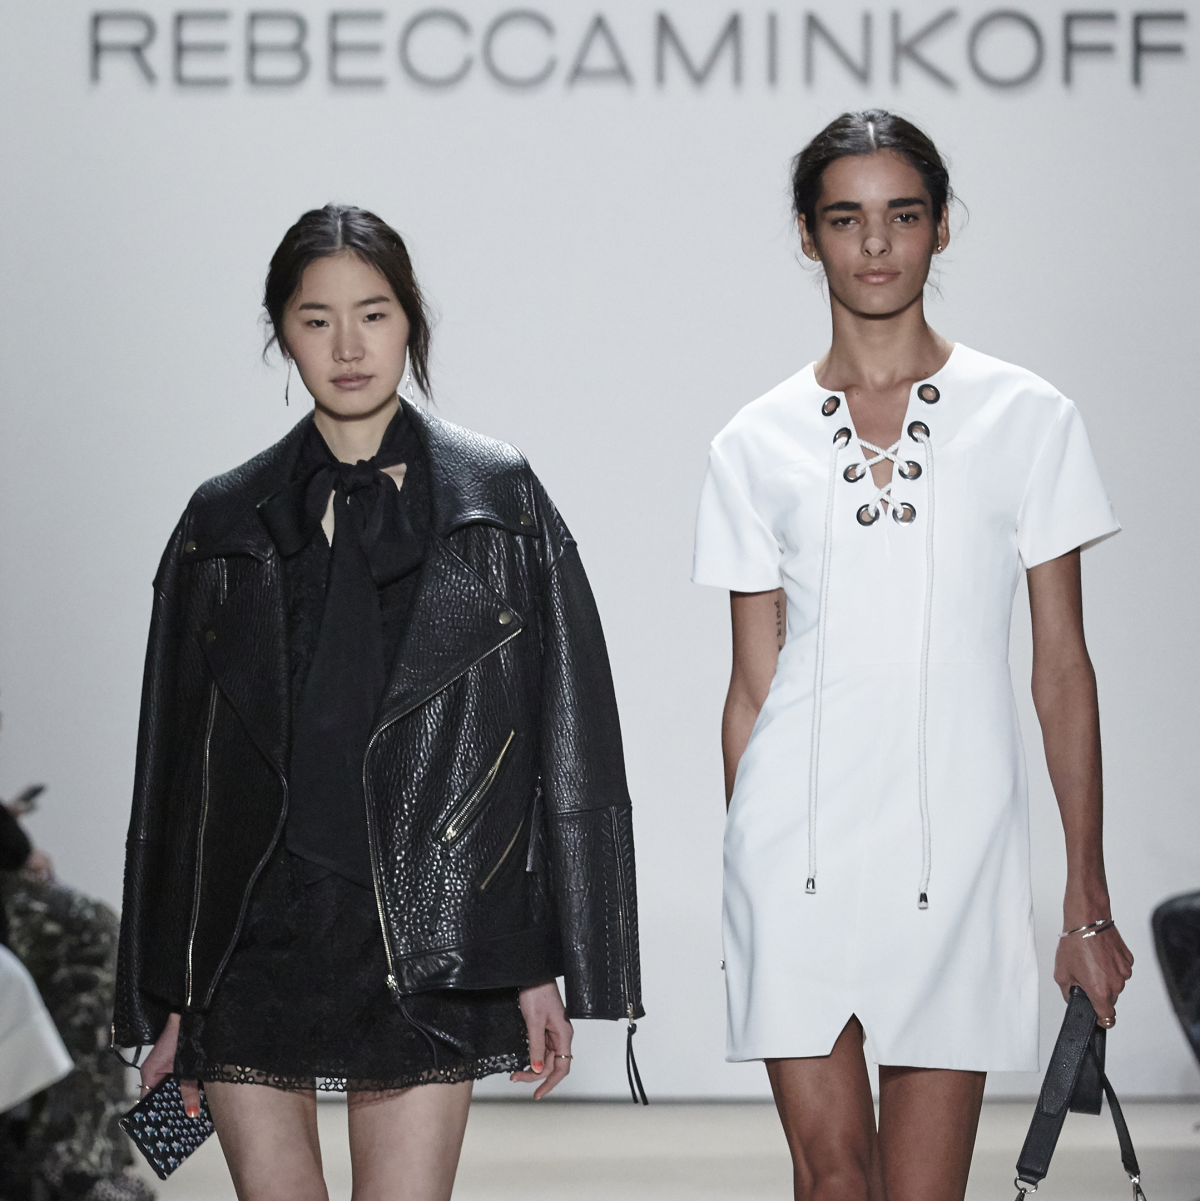 Rebecca Minkoff Look 13A and 13B